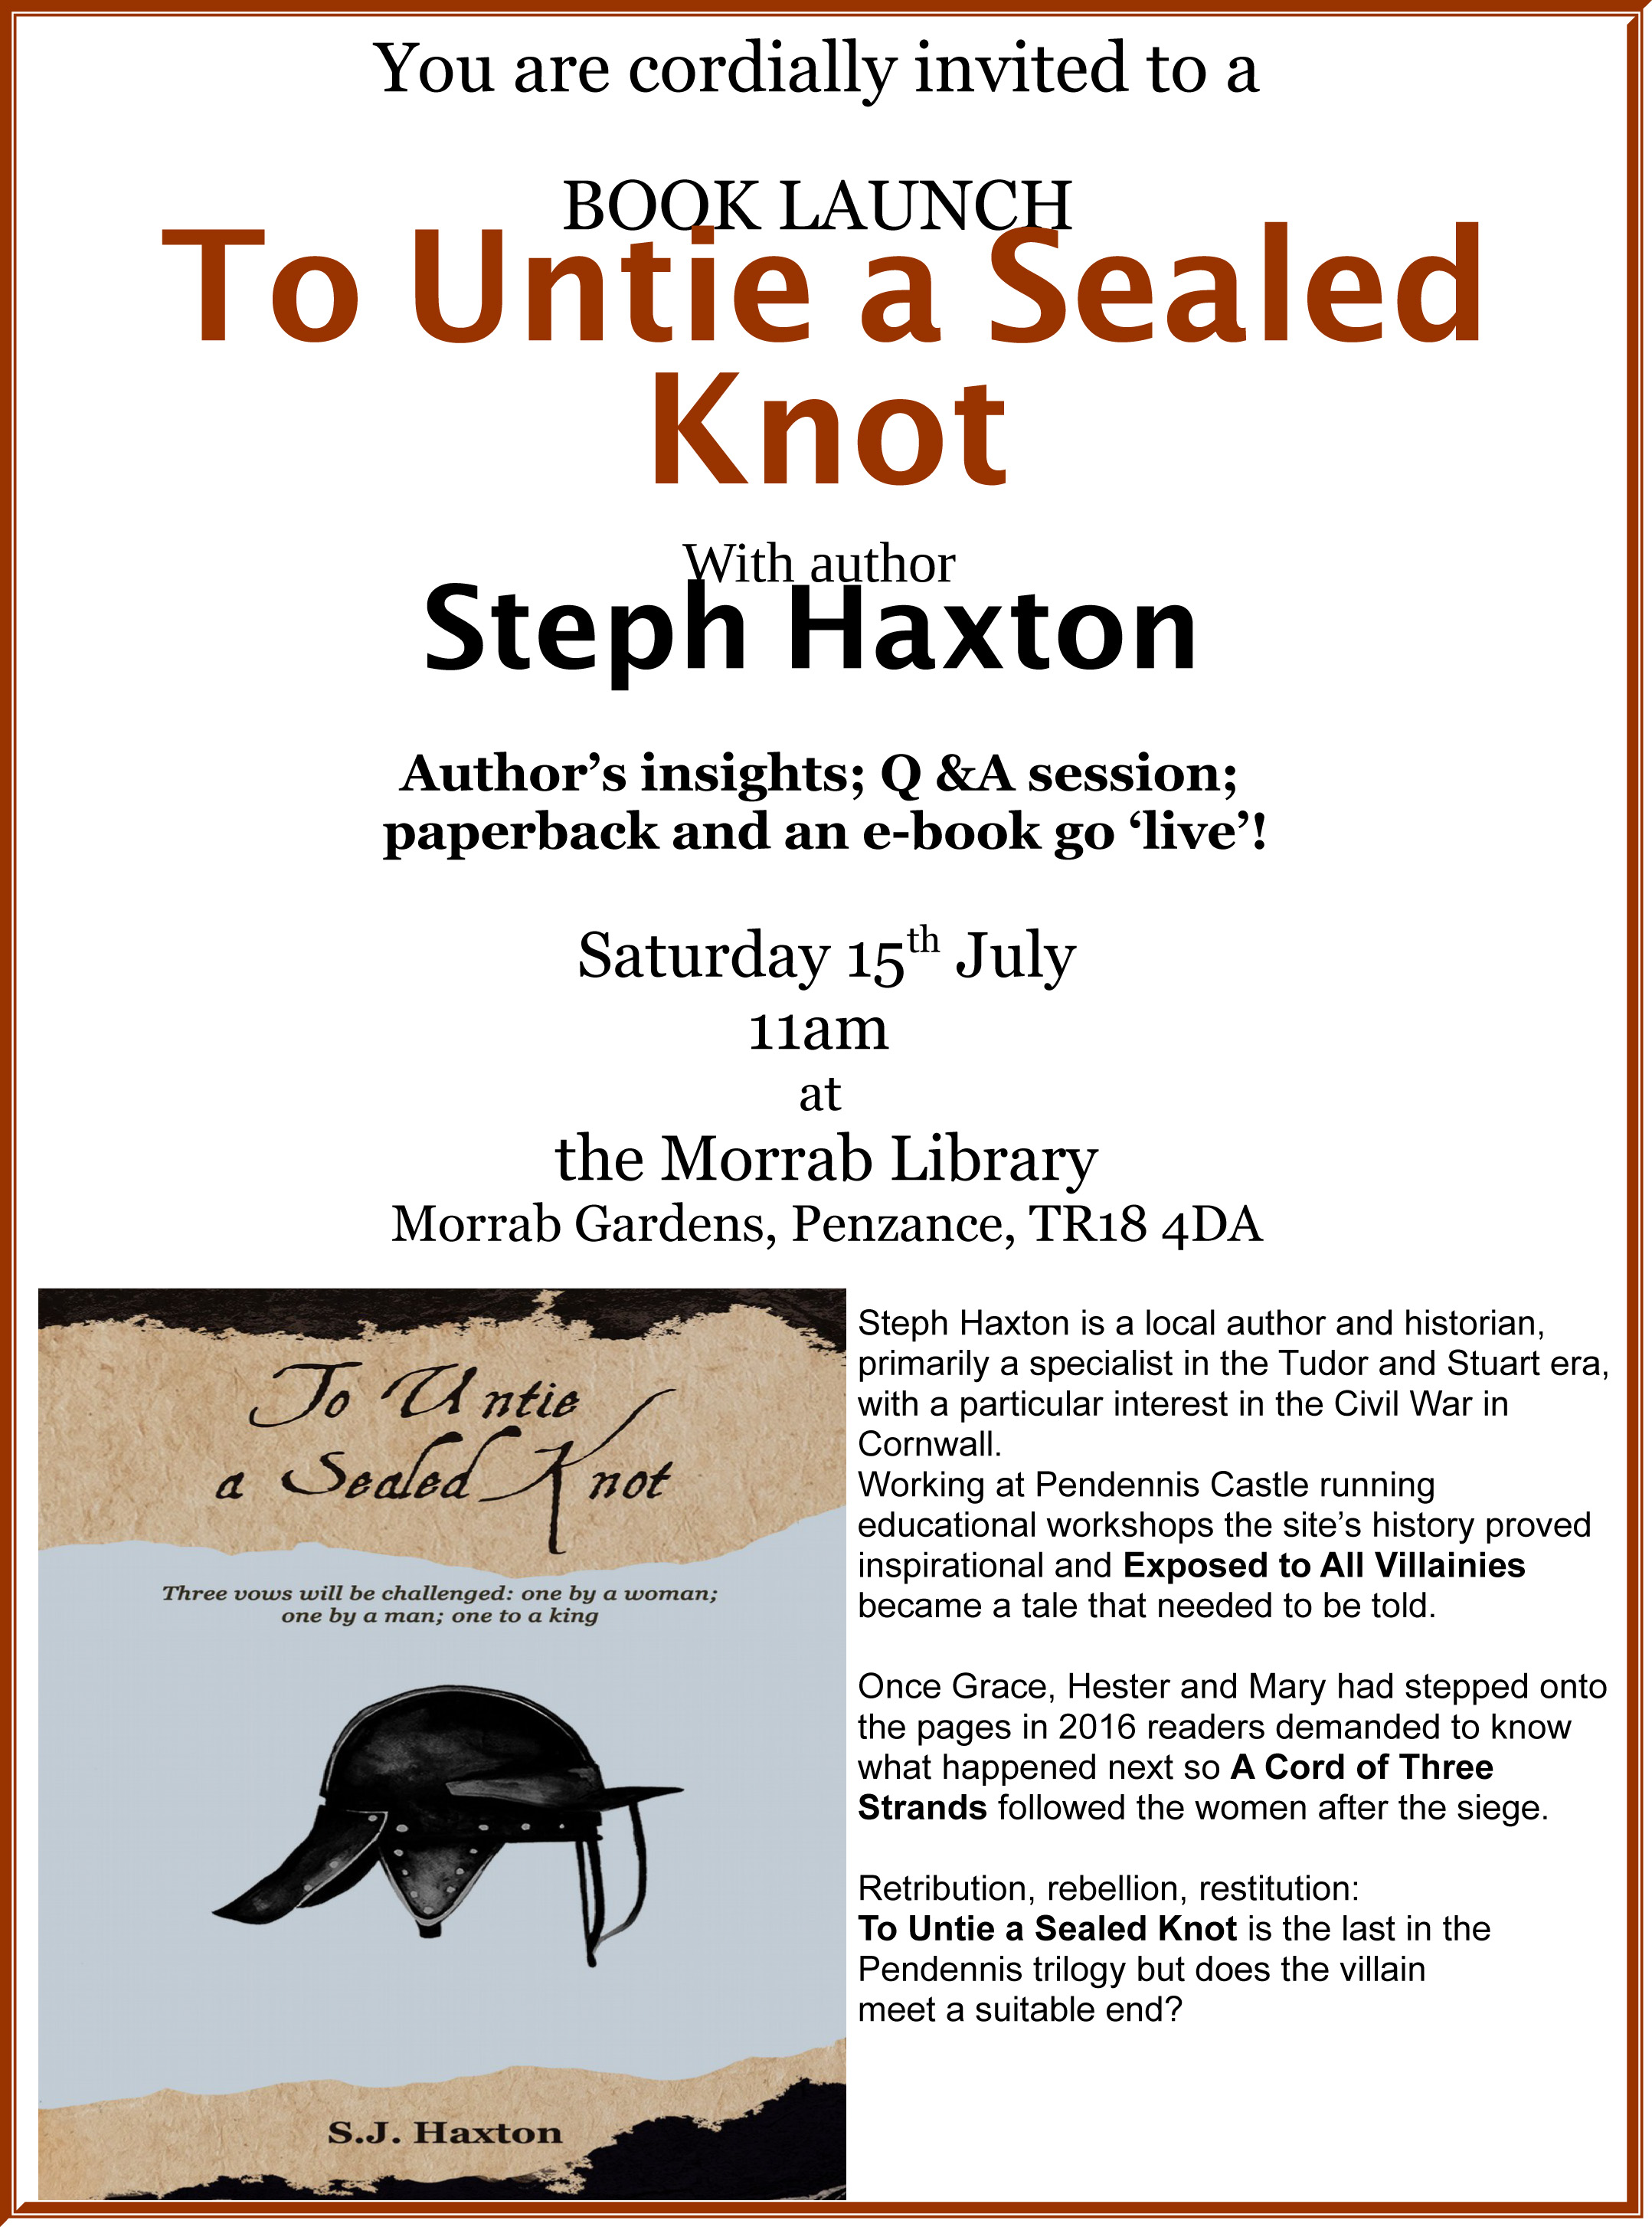 To Untie a Sealed Knot Launch Poster